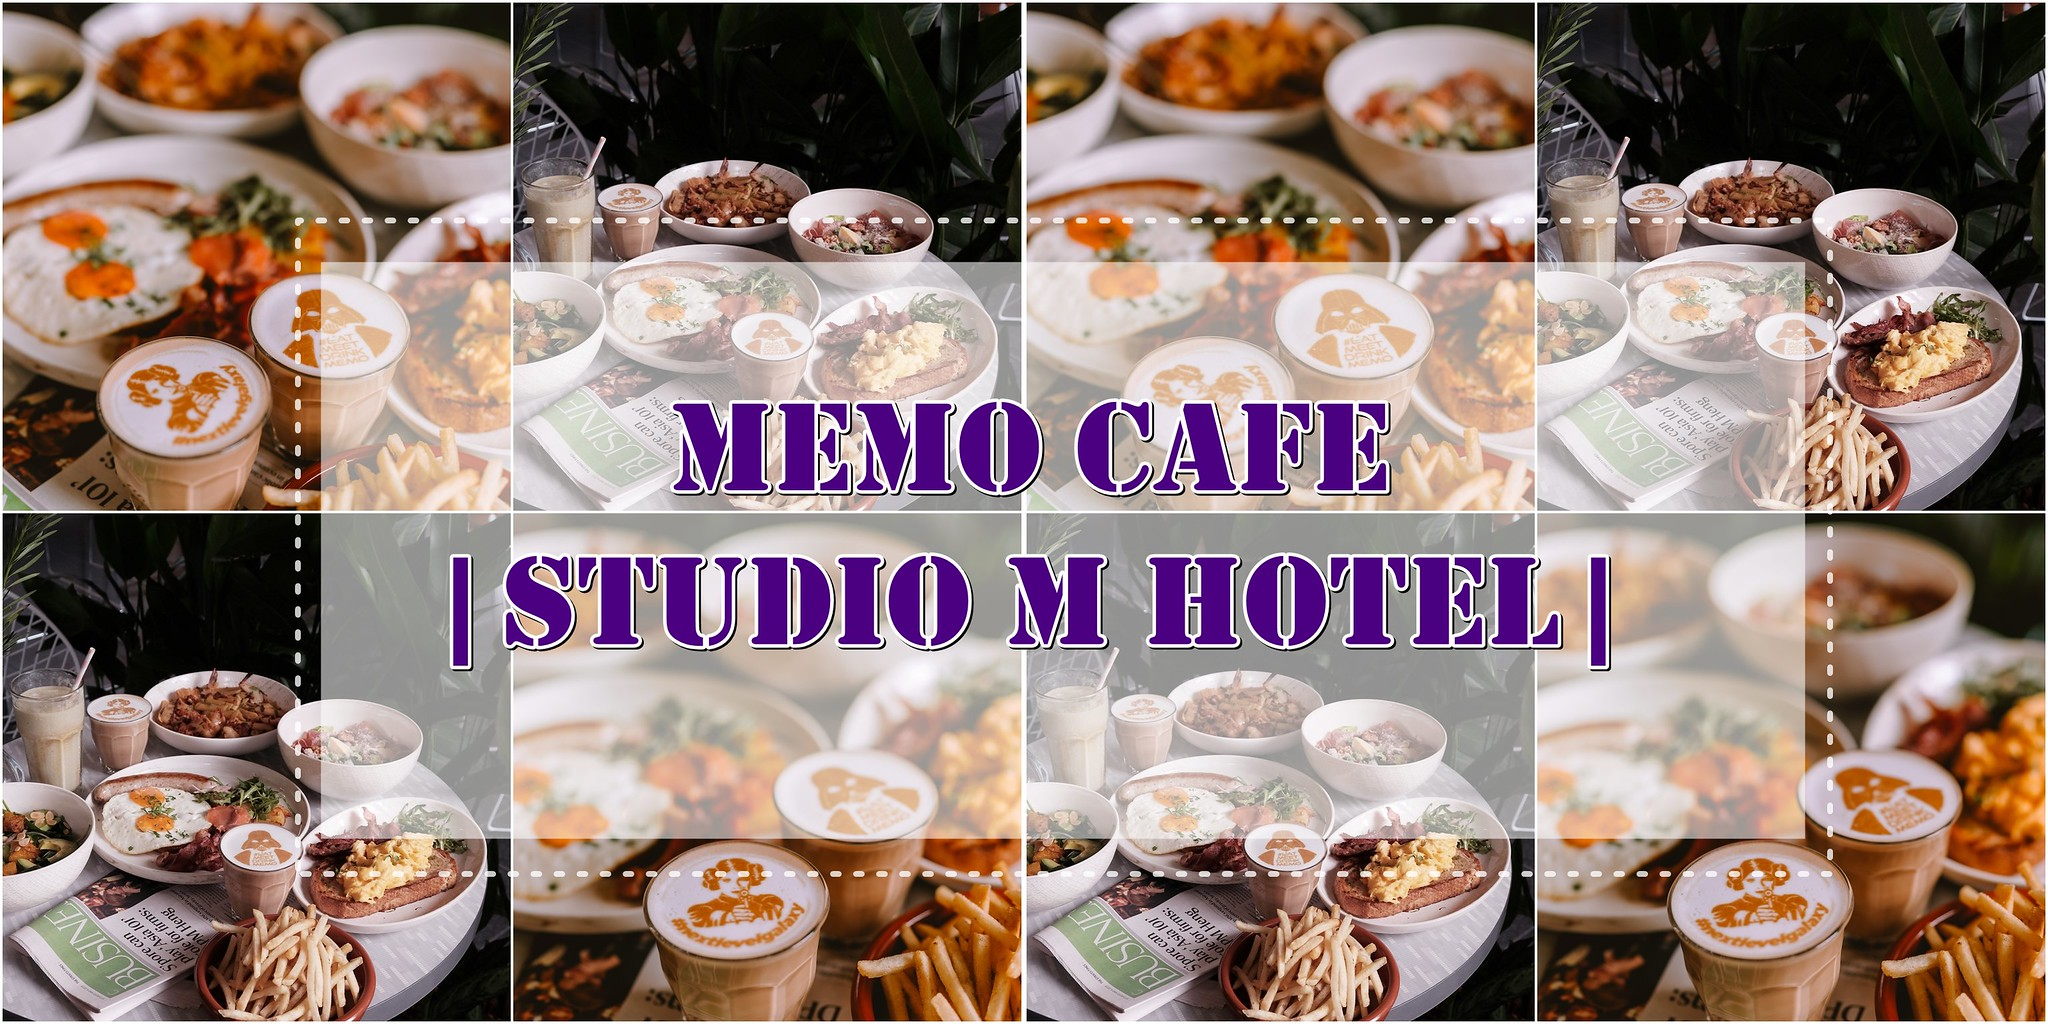 [SG EATS] MEMO Café at Studio M Hotel Singapore- All Day Casual Dining Café Experience